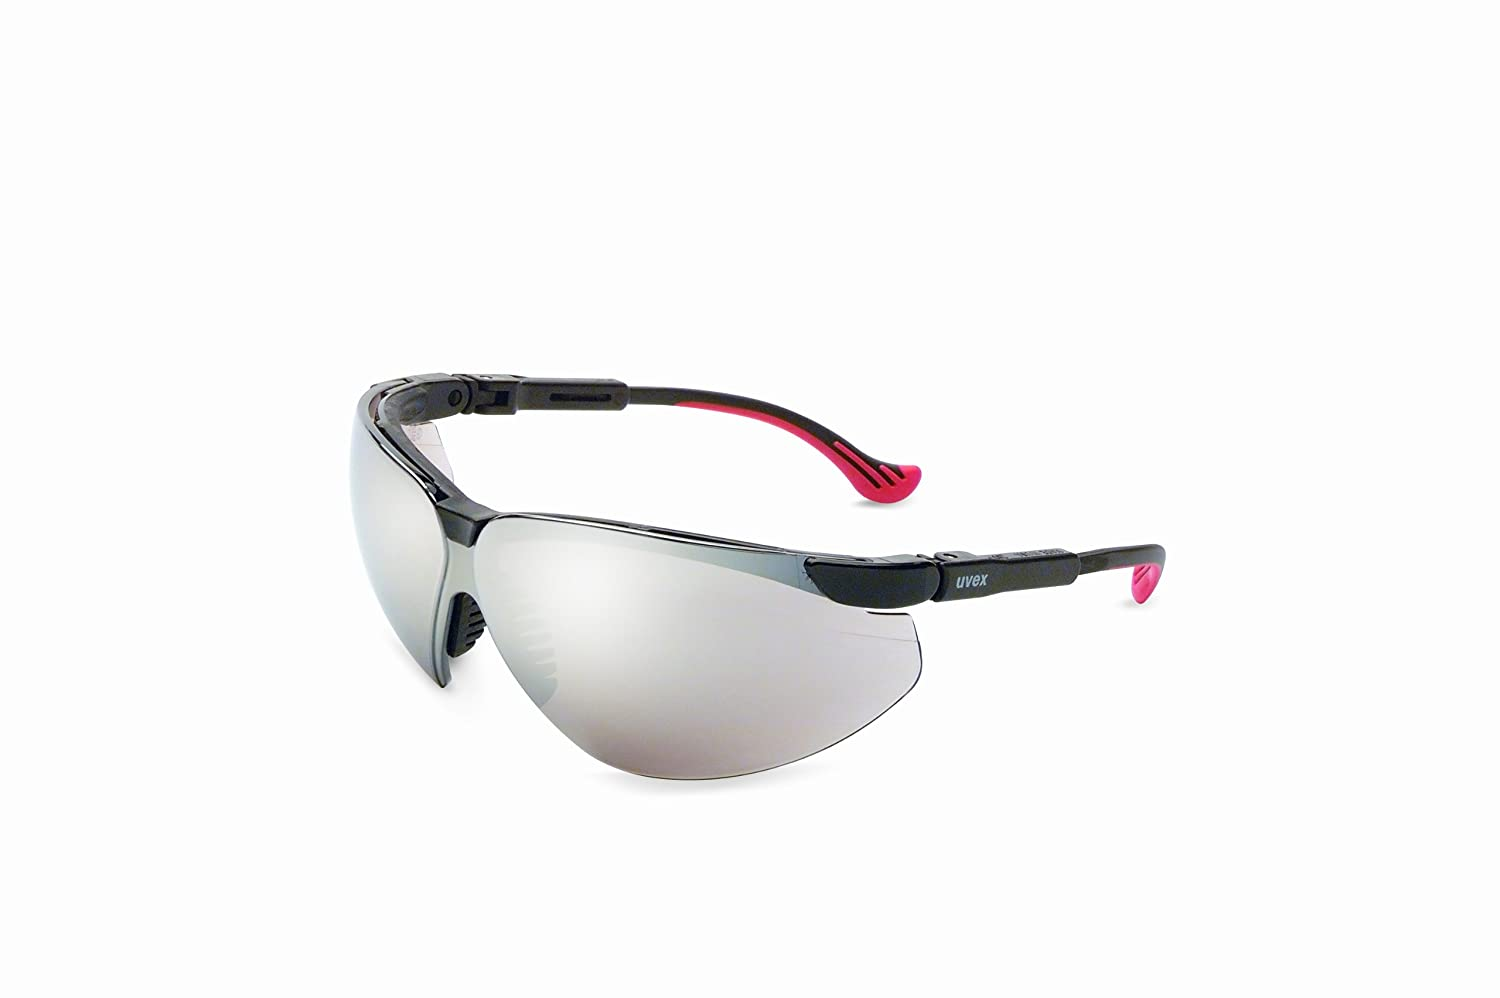 bbbc353a9a7 Uvex by Honeywell Genesis XC Safety Glasses